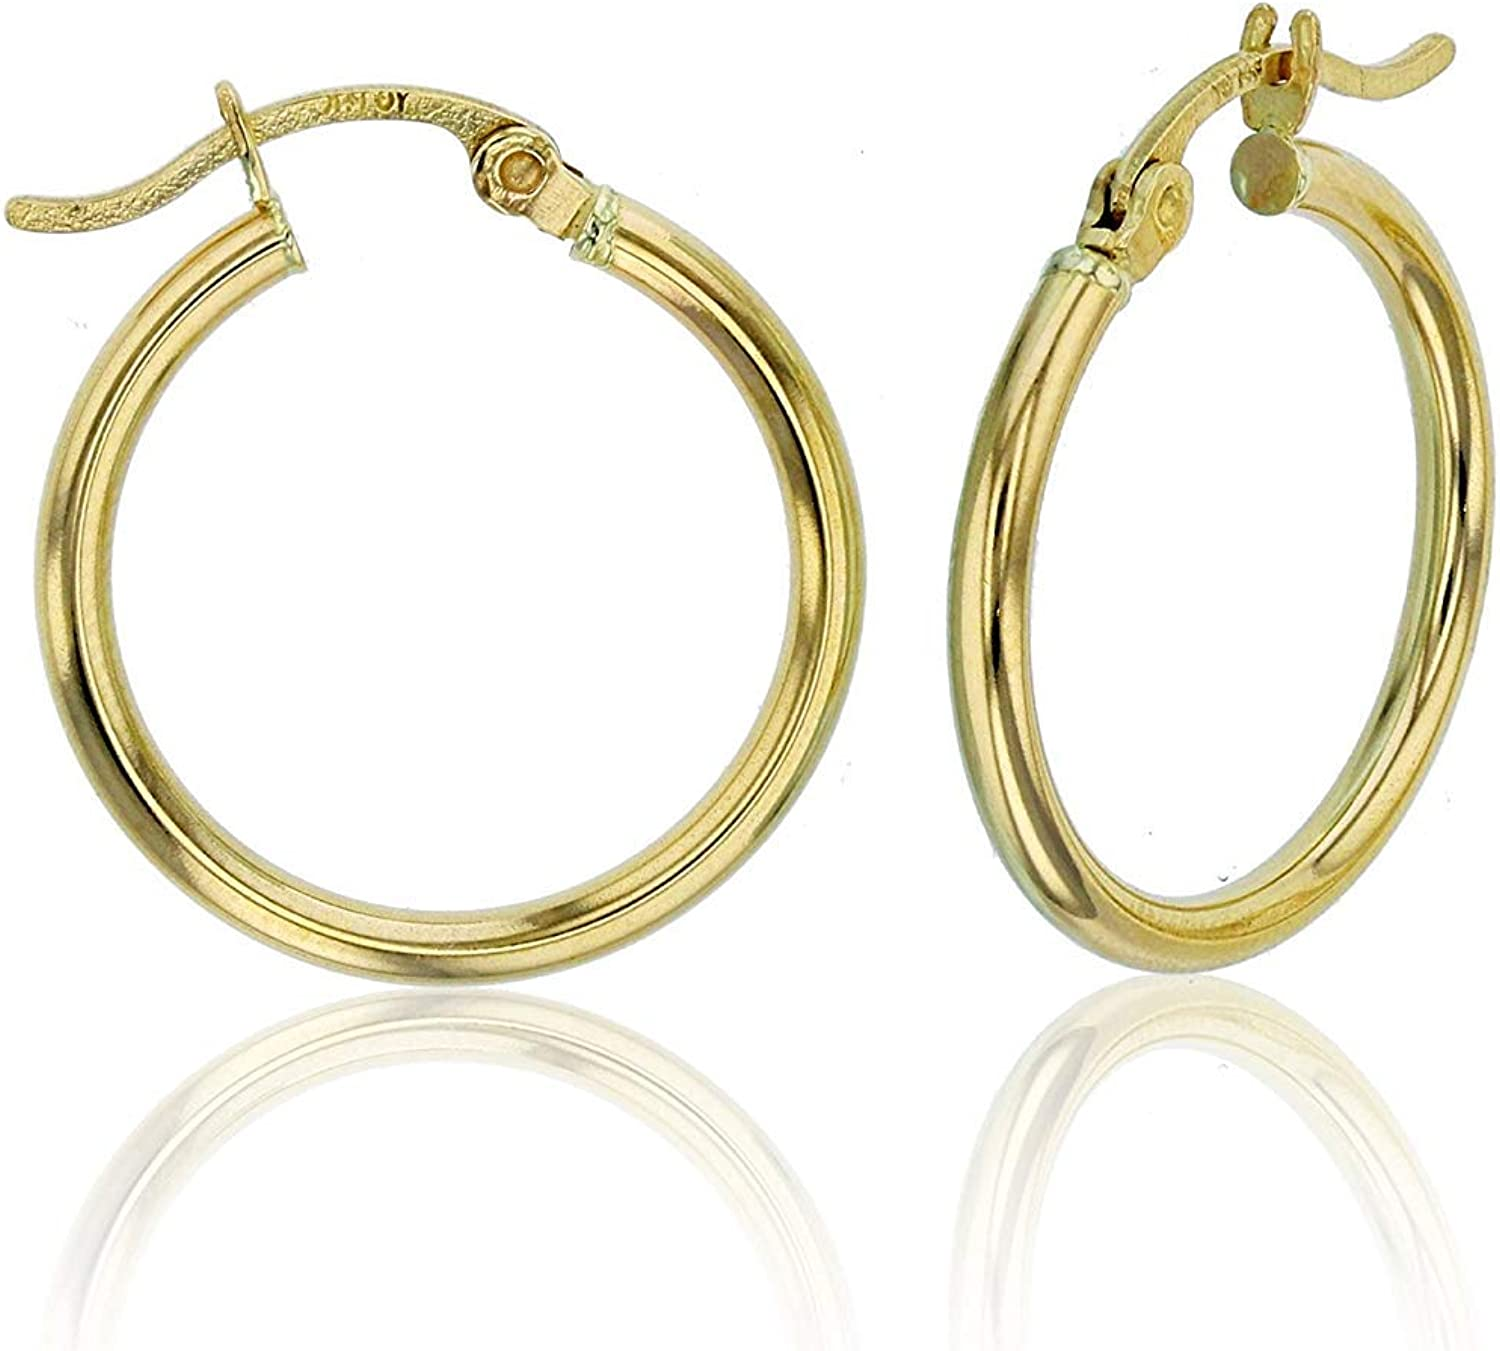 14k Yellow or White Gold 3mm Solid Polished Round Hoop Earrings for Women | 3mm Thick | Classic Style | Hoop Earrings | Secure Click-Top | Polished Earrings, 15mm-90mm